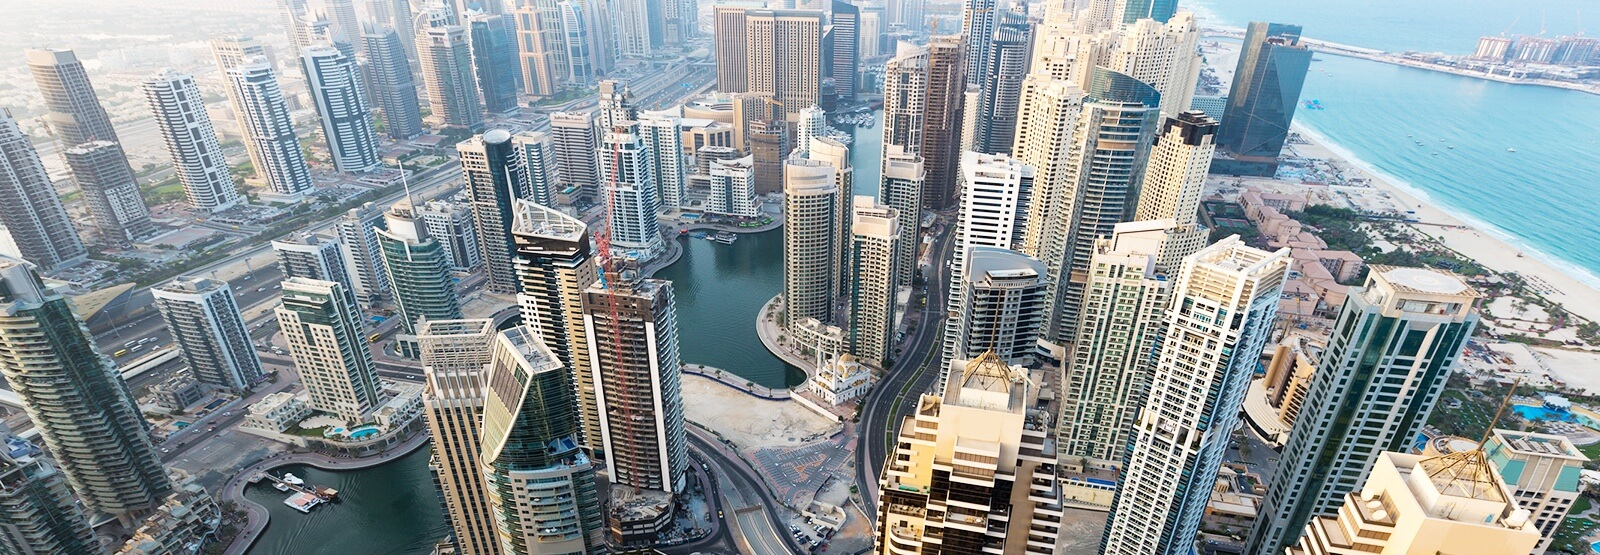 Over 42,000 New Business Licenses Issued in Dubai in 2020